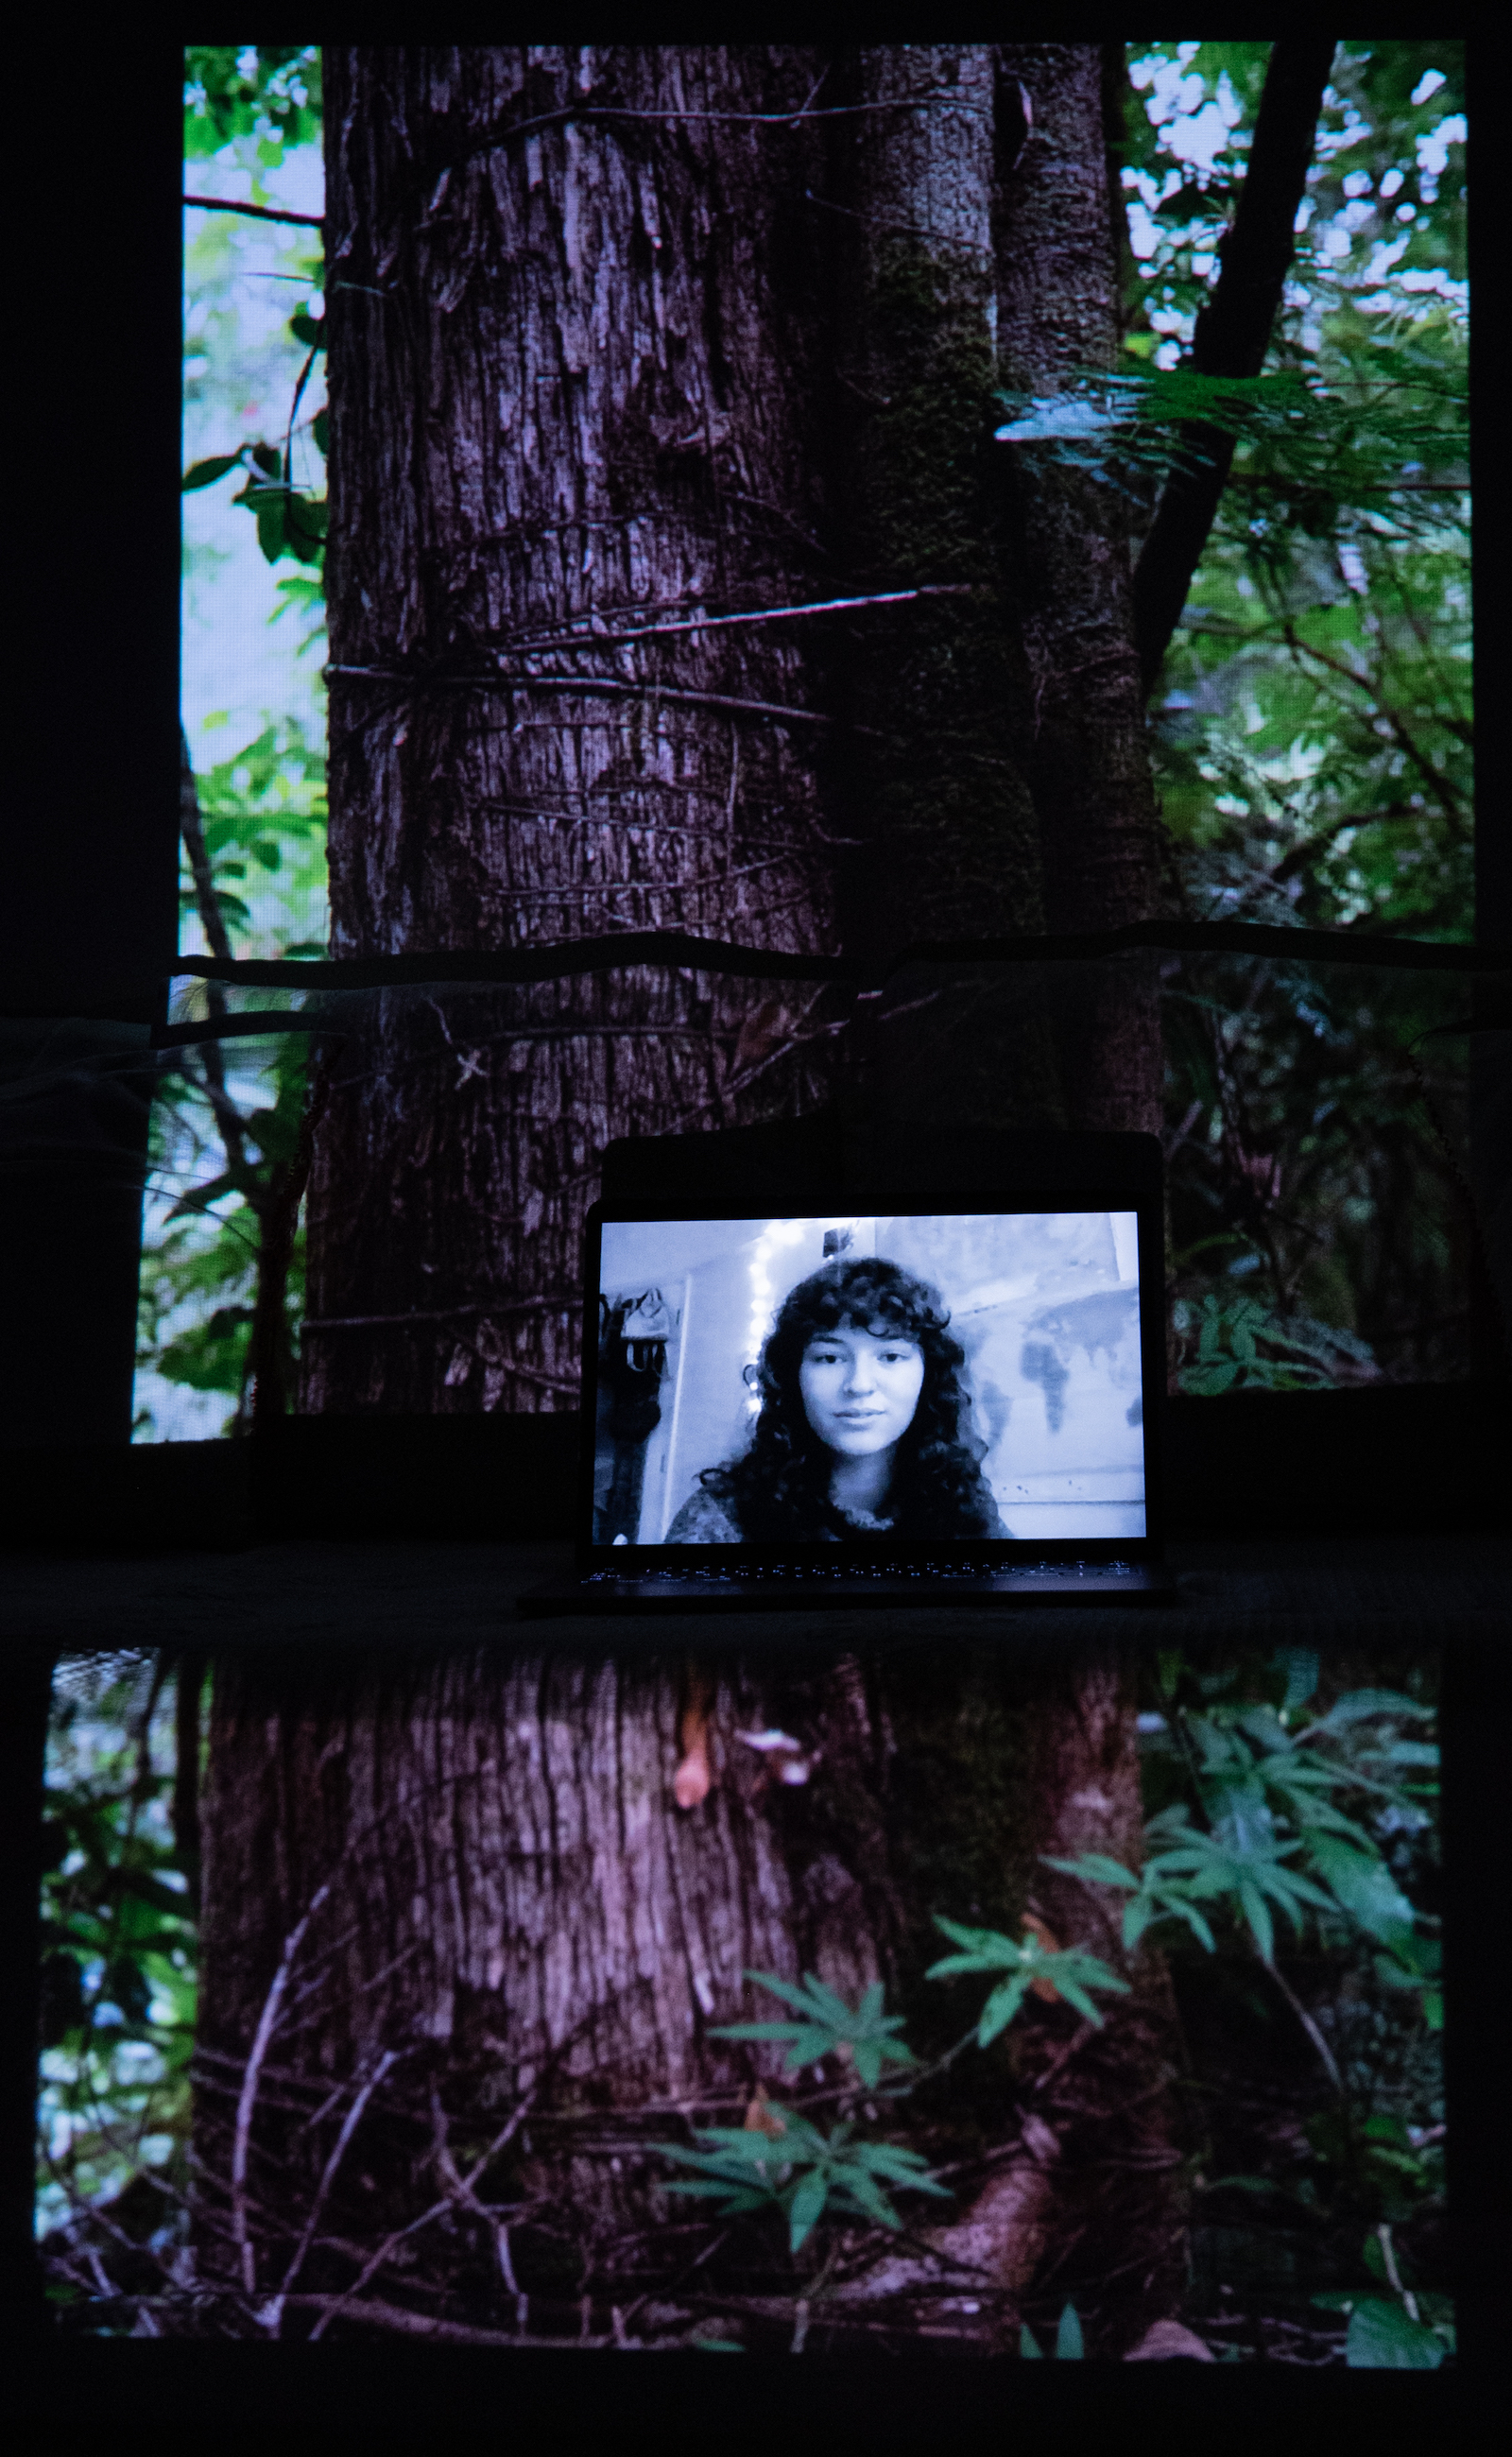 Talia Woodin, Extinction Rebellion Youth Coordinator. Projected Image: The Vine Embraced the Tree, Lacandon Jungle, Mexico, December 2020.